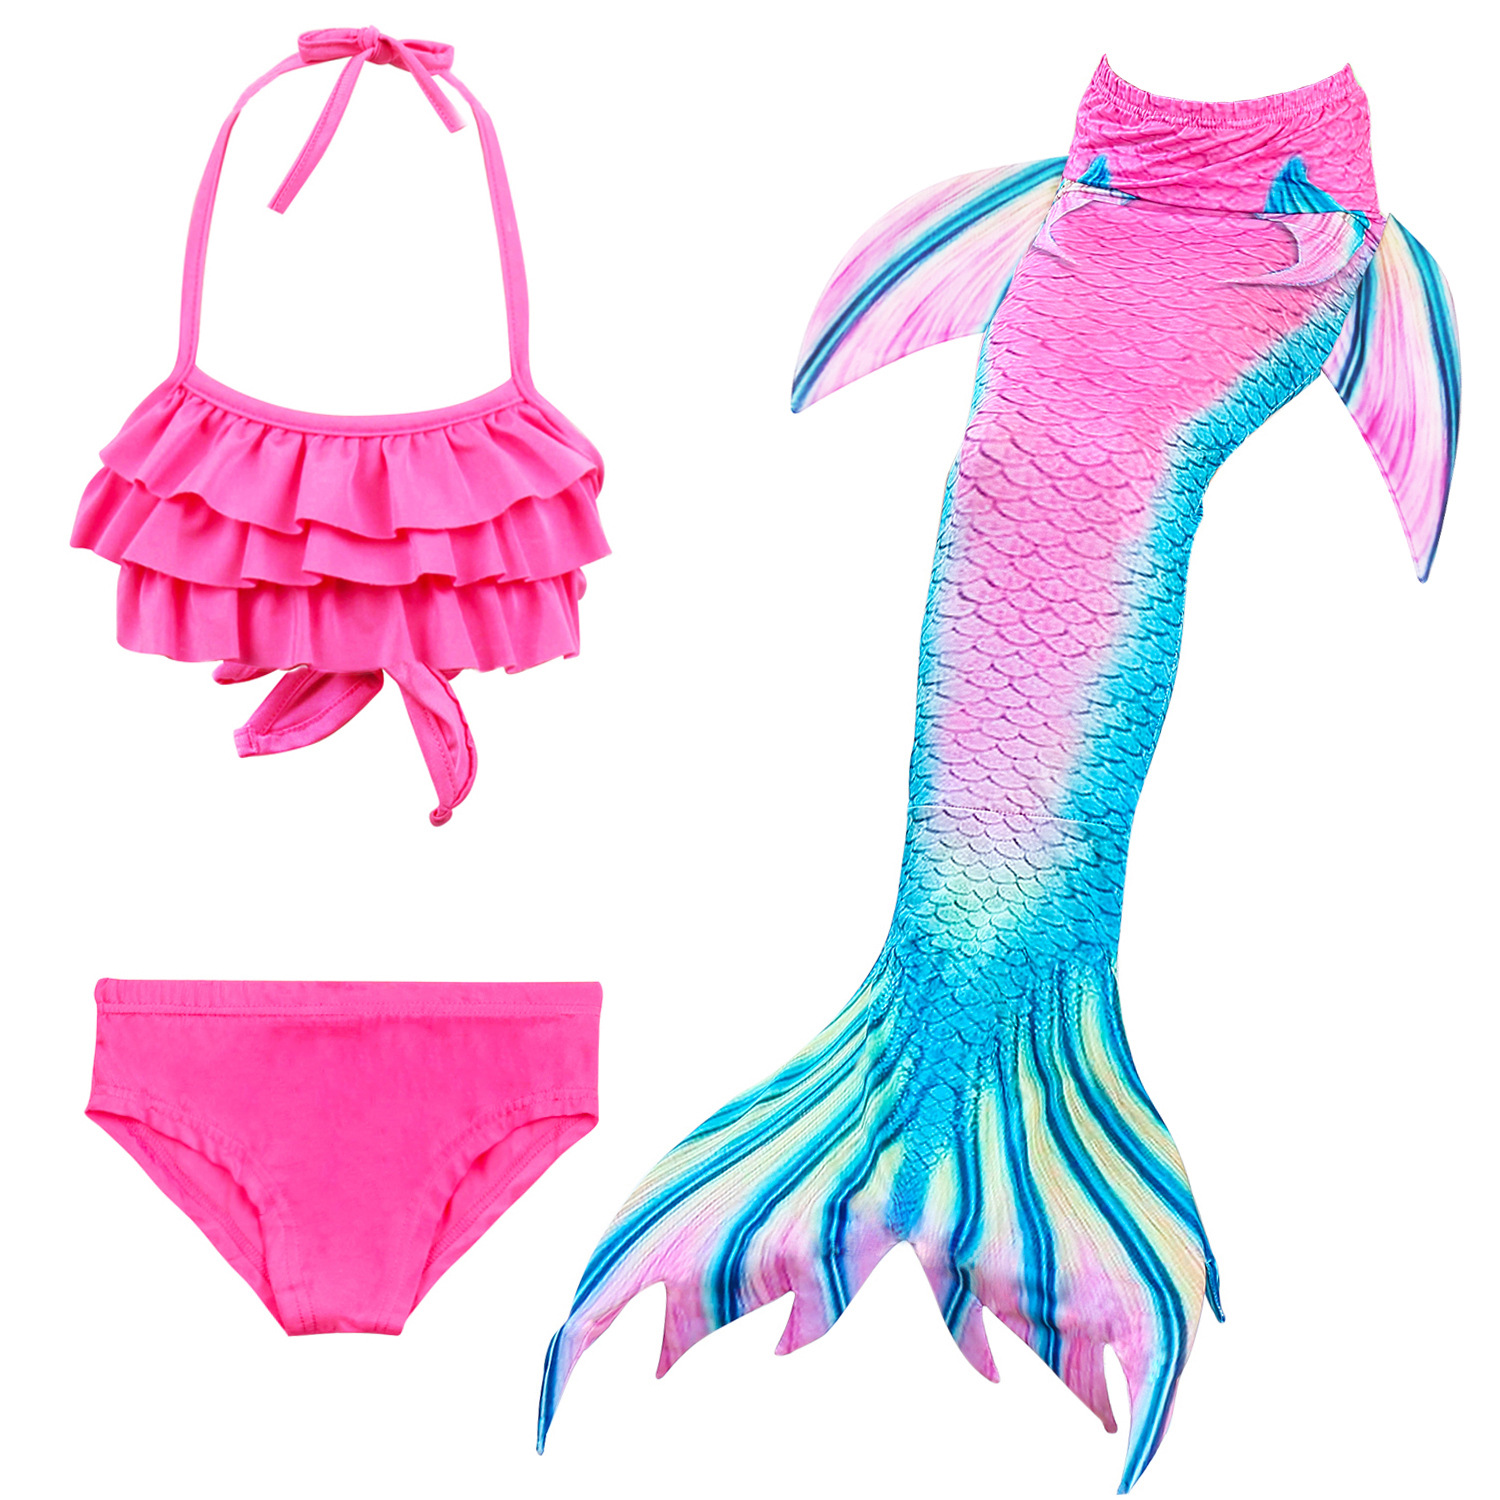 9258201761 898390851 - 4PCS/Set HOT Kids Girls Mermaid Tails with Fin Swimsuit Bikini Bathing Suit Dress for Girls With Flipper Monofin For Swim